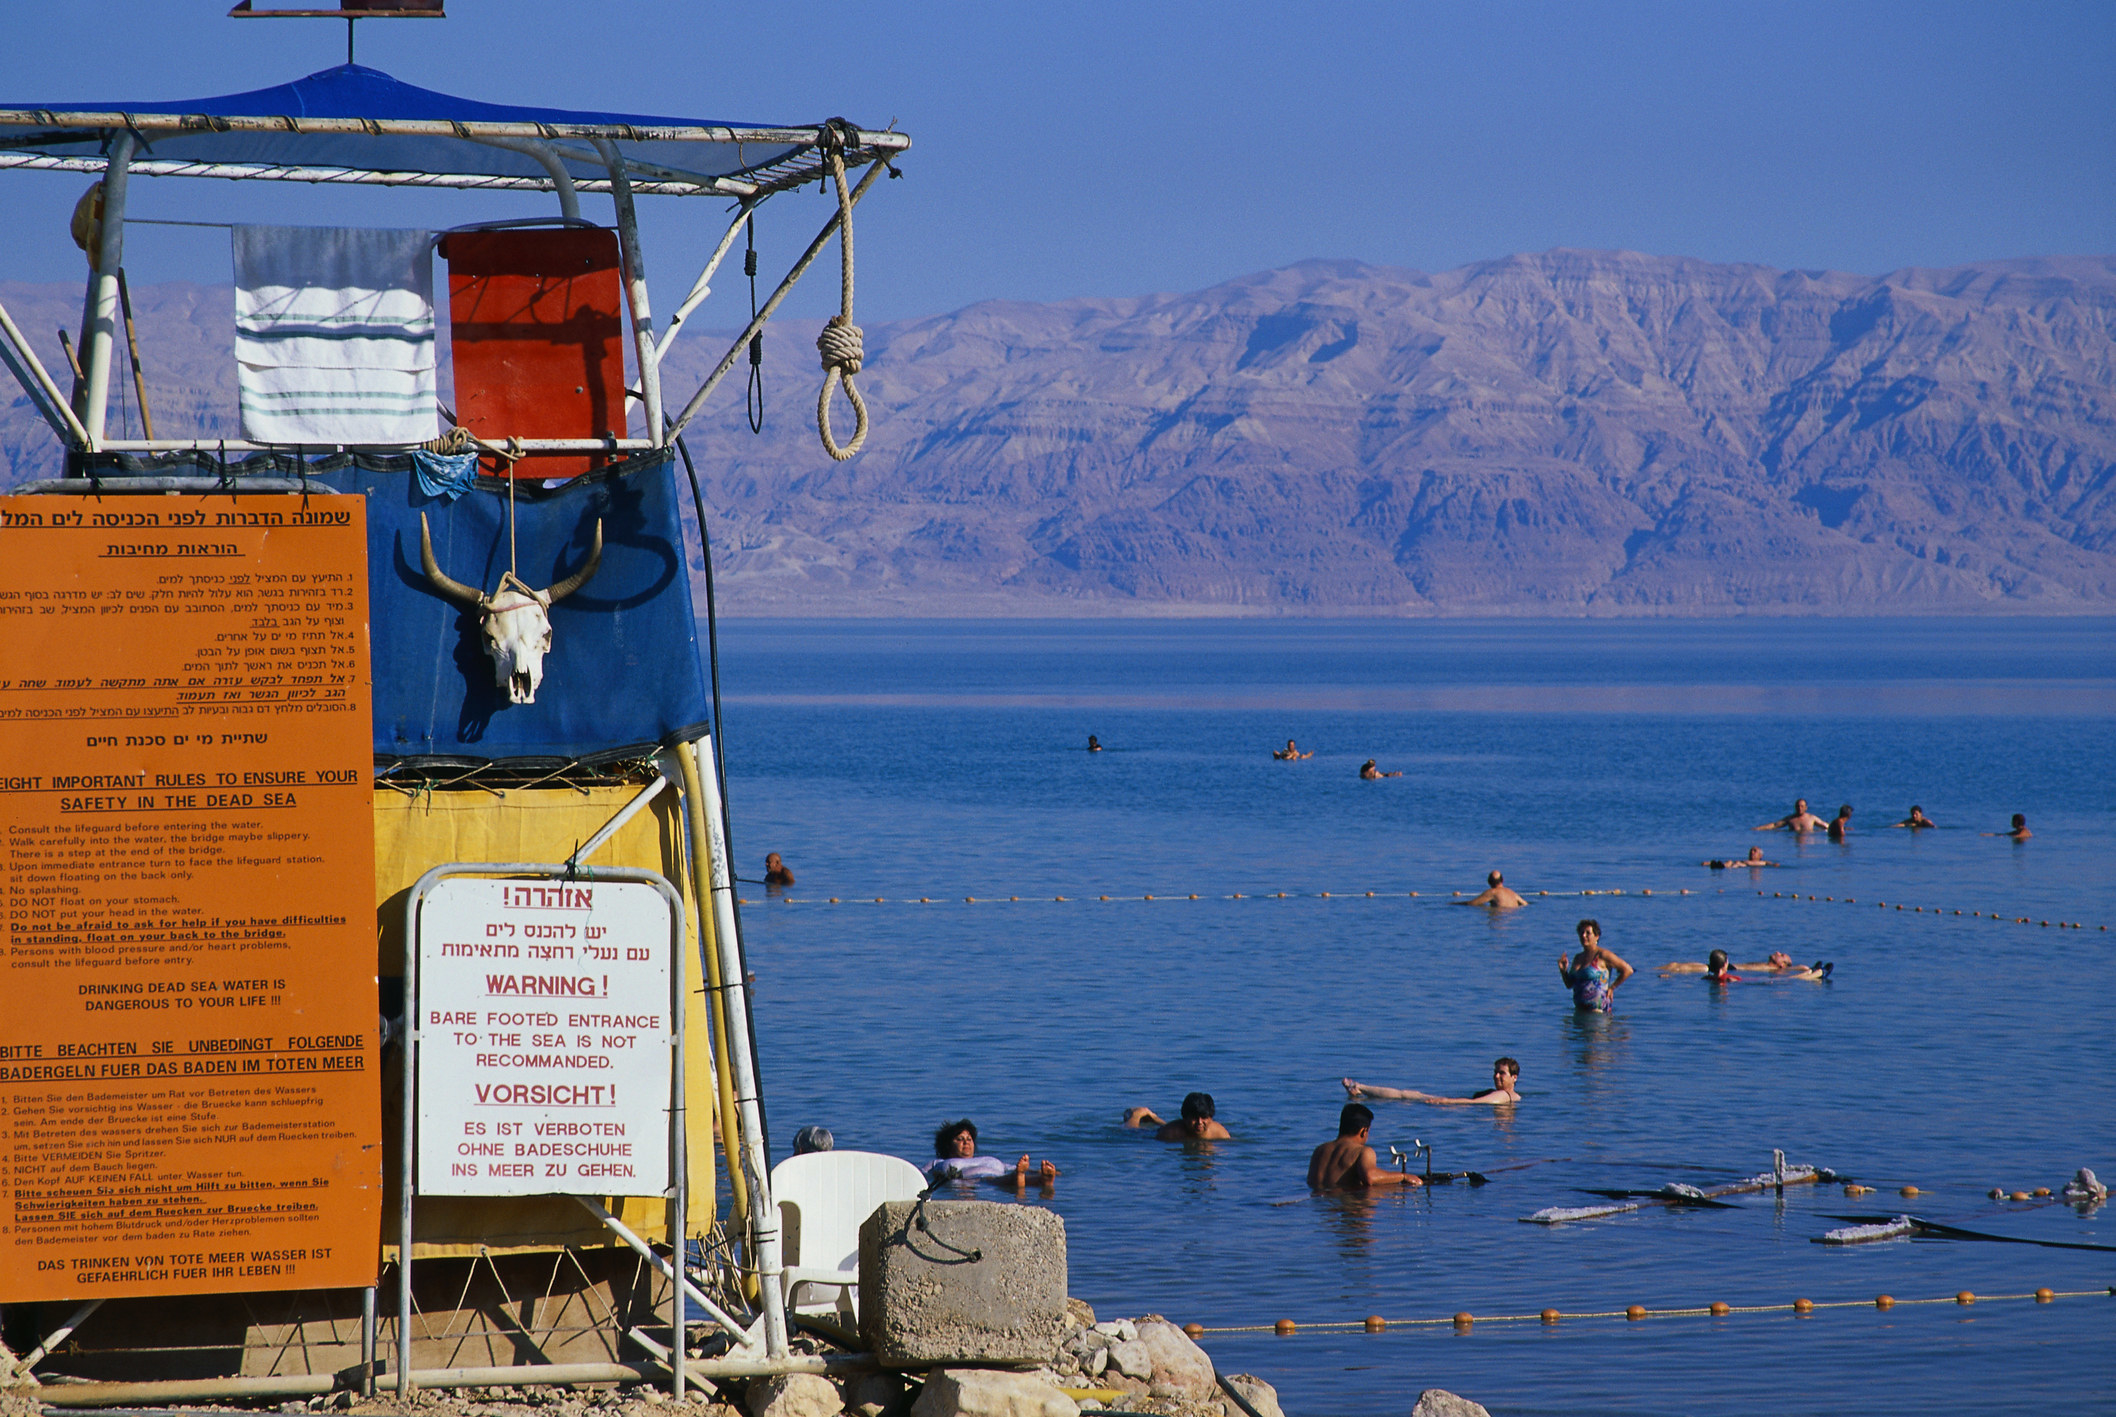 A lifeguard station at the Dead Sea.